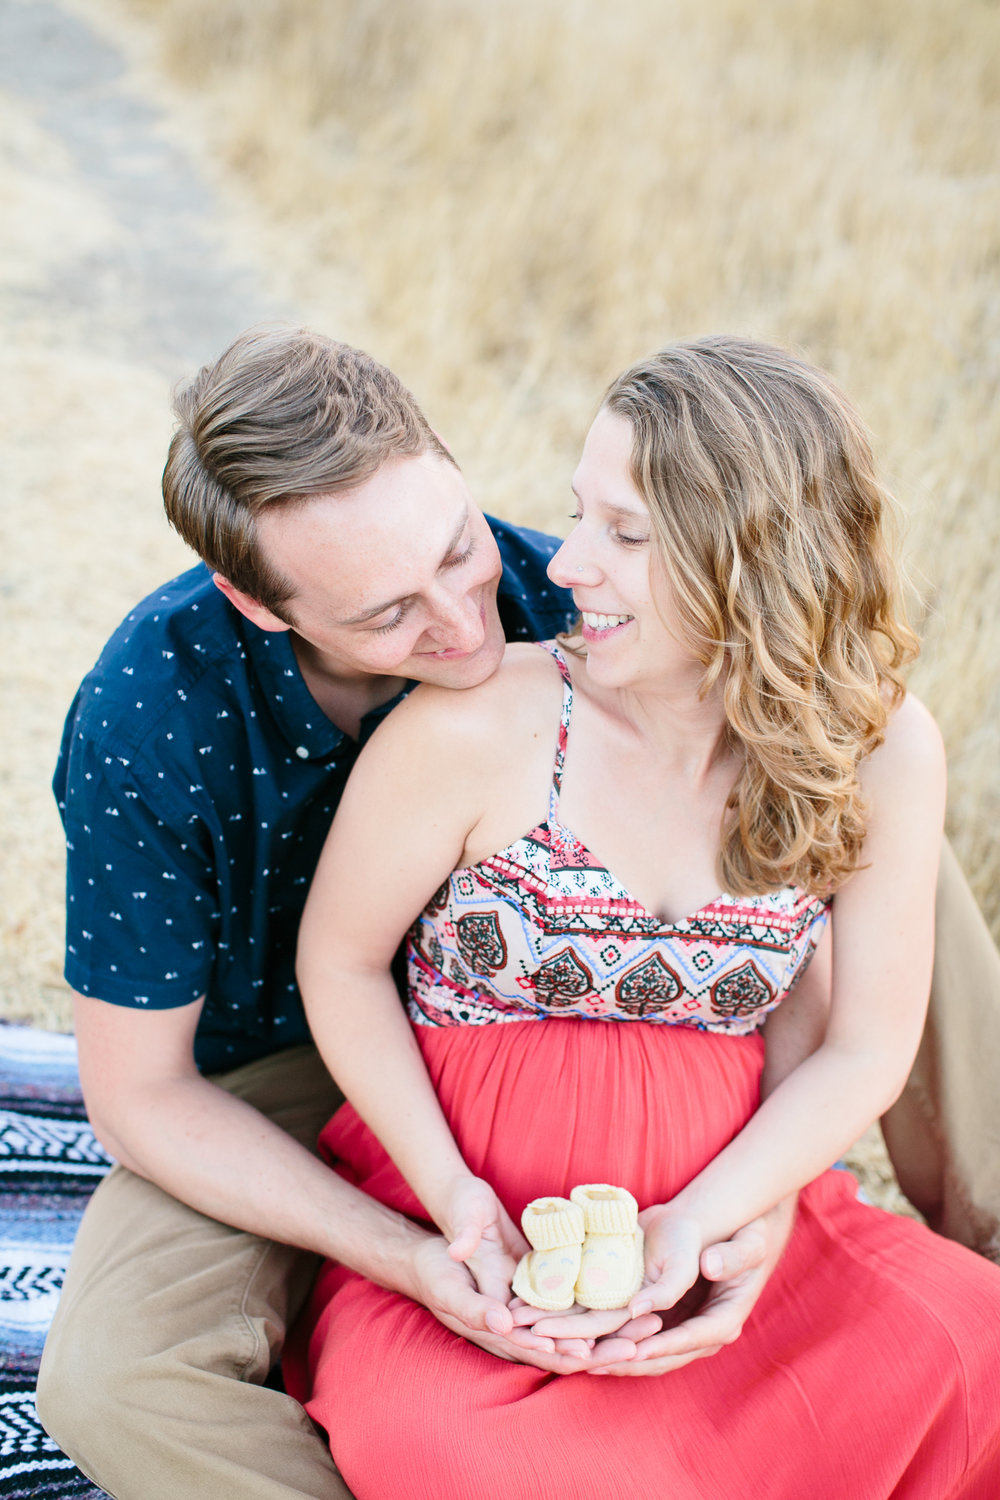 Malibu_Maternity_Photographer-0330.jpg